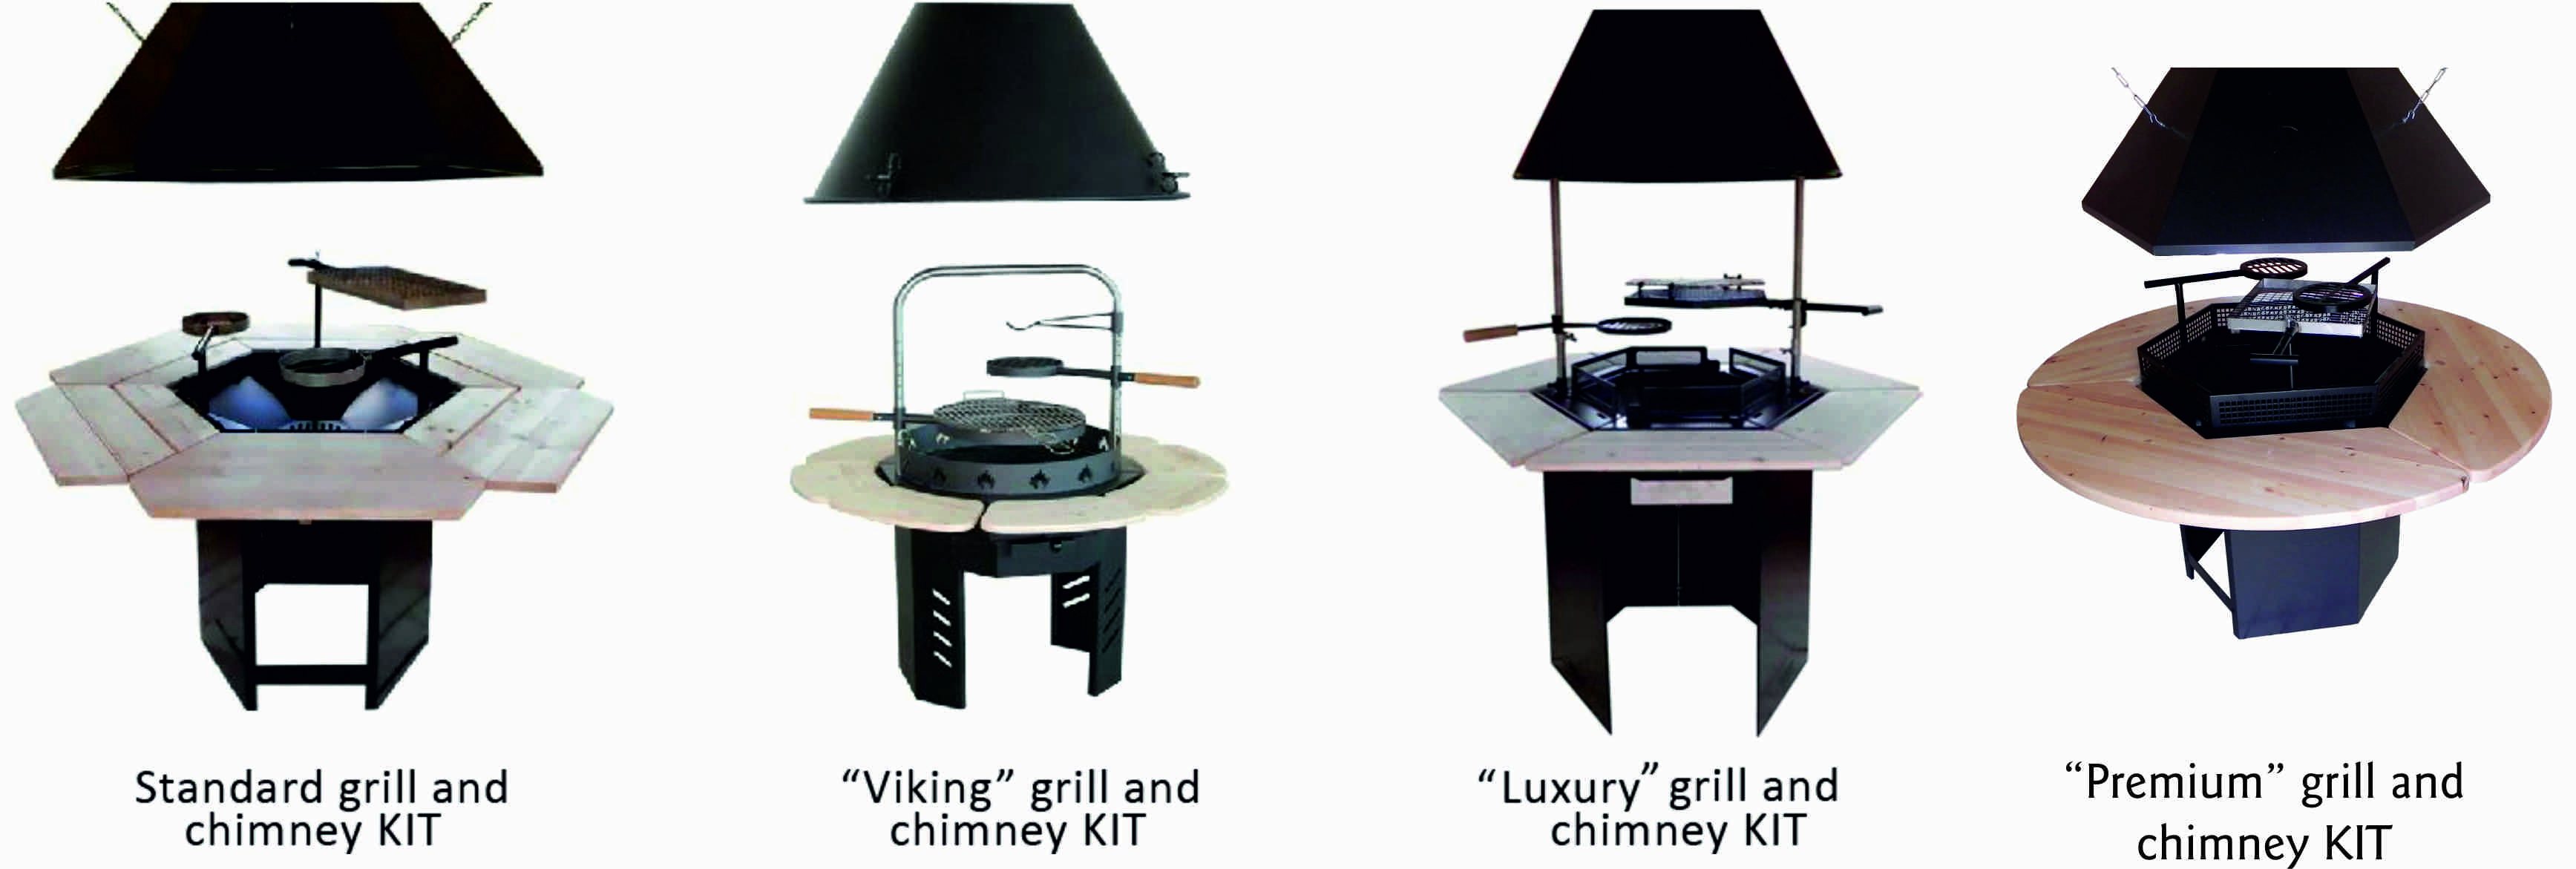 Grill and chimney kit